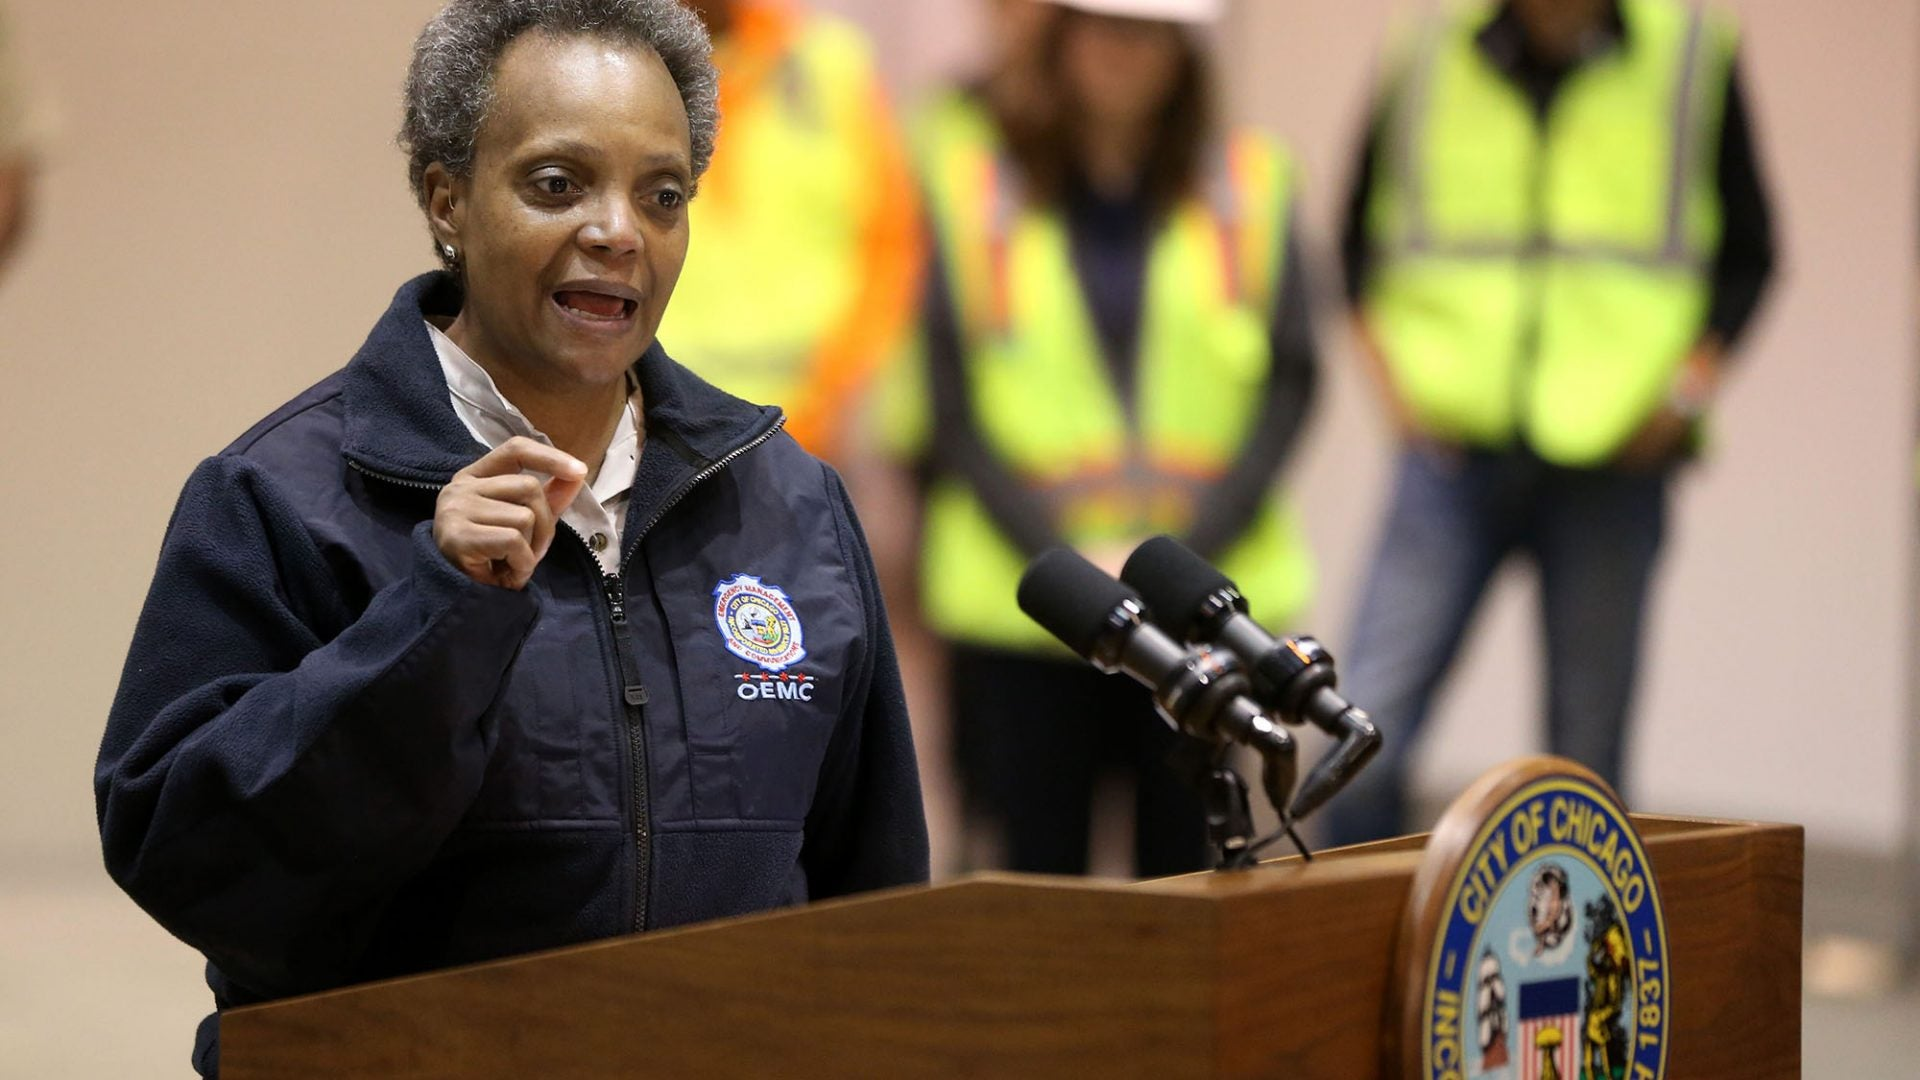 Chicago Mayor Lori Lightfoot Faces Backlash After Getting Haircut During Pandemic